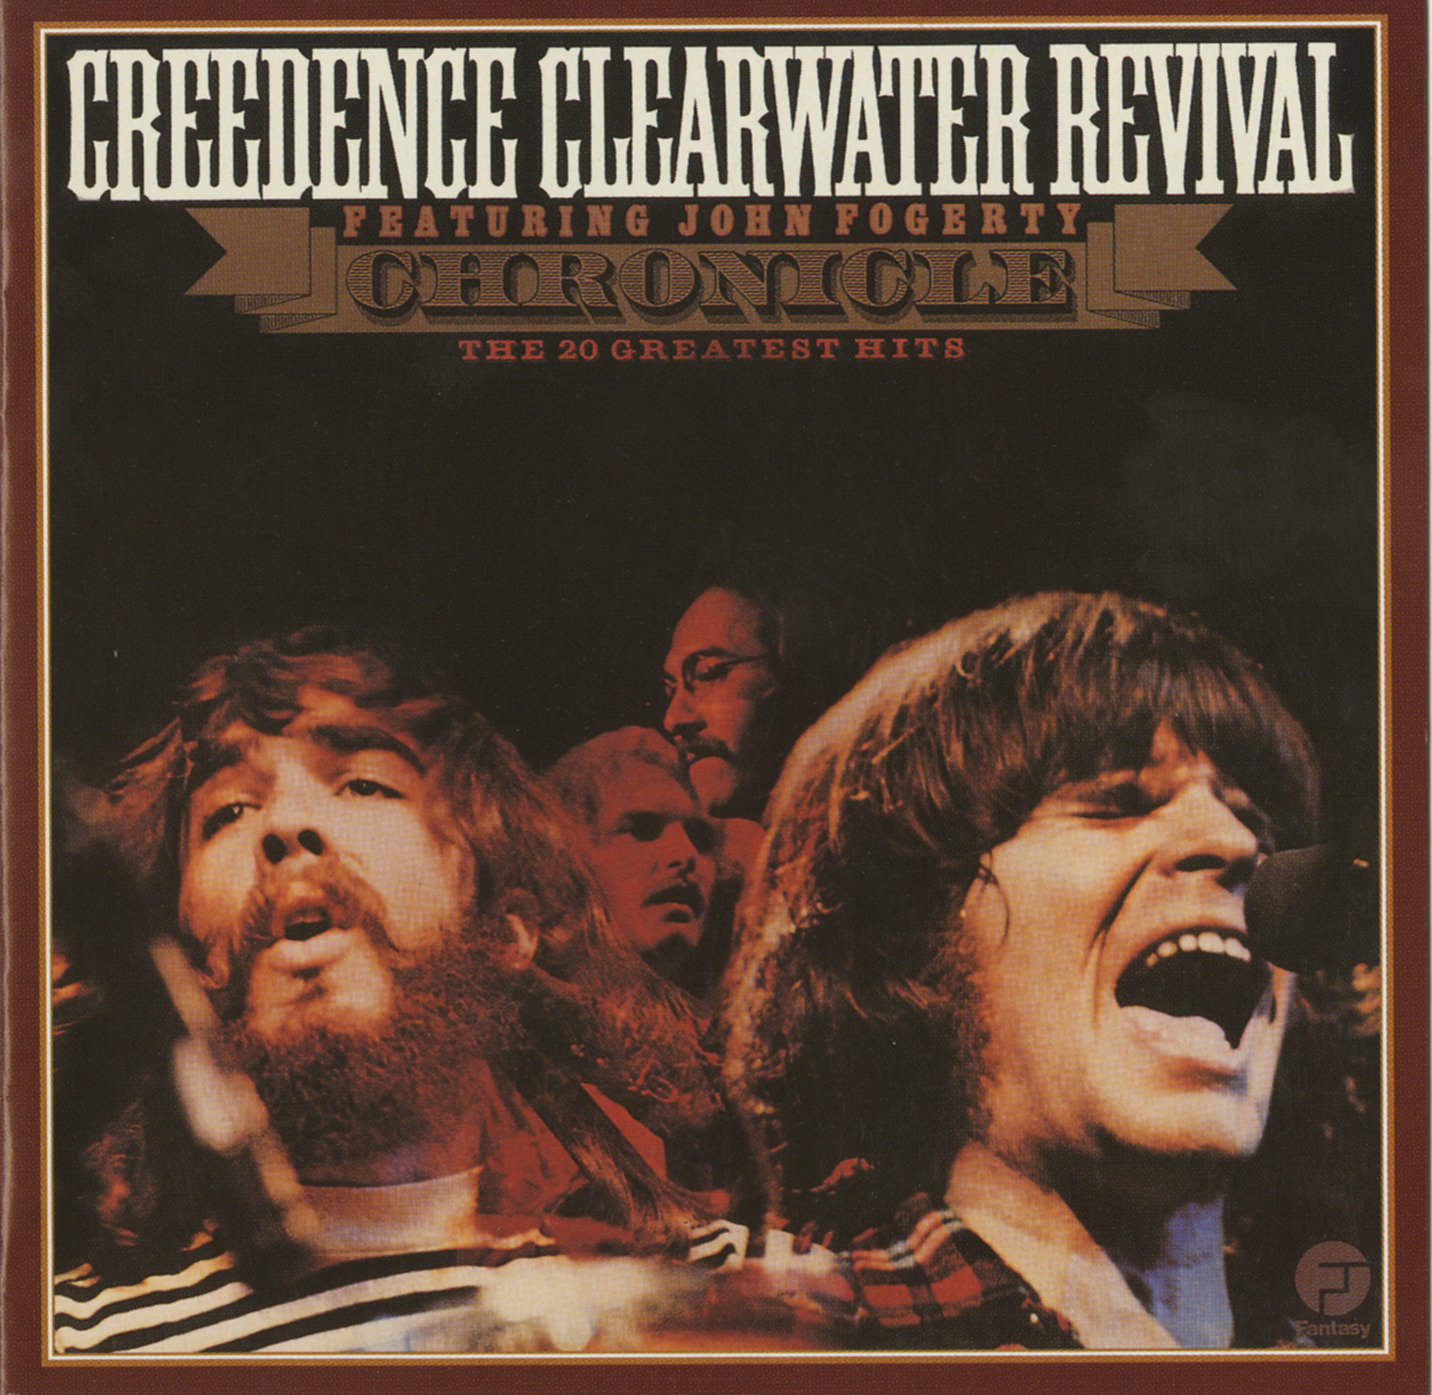 Listen Free to Creedence Clearwater Revival - Bad Moon Rising Radio | iHeartRadio